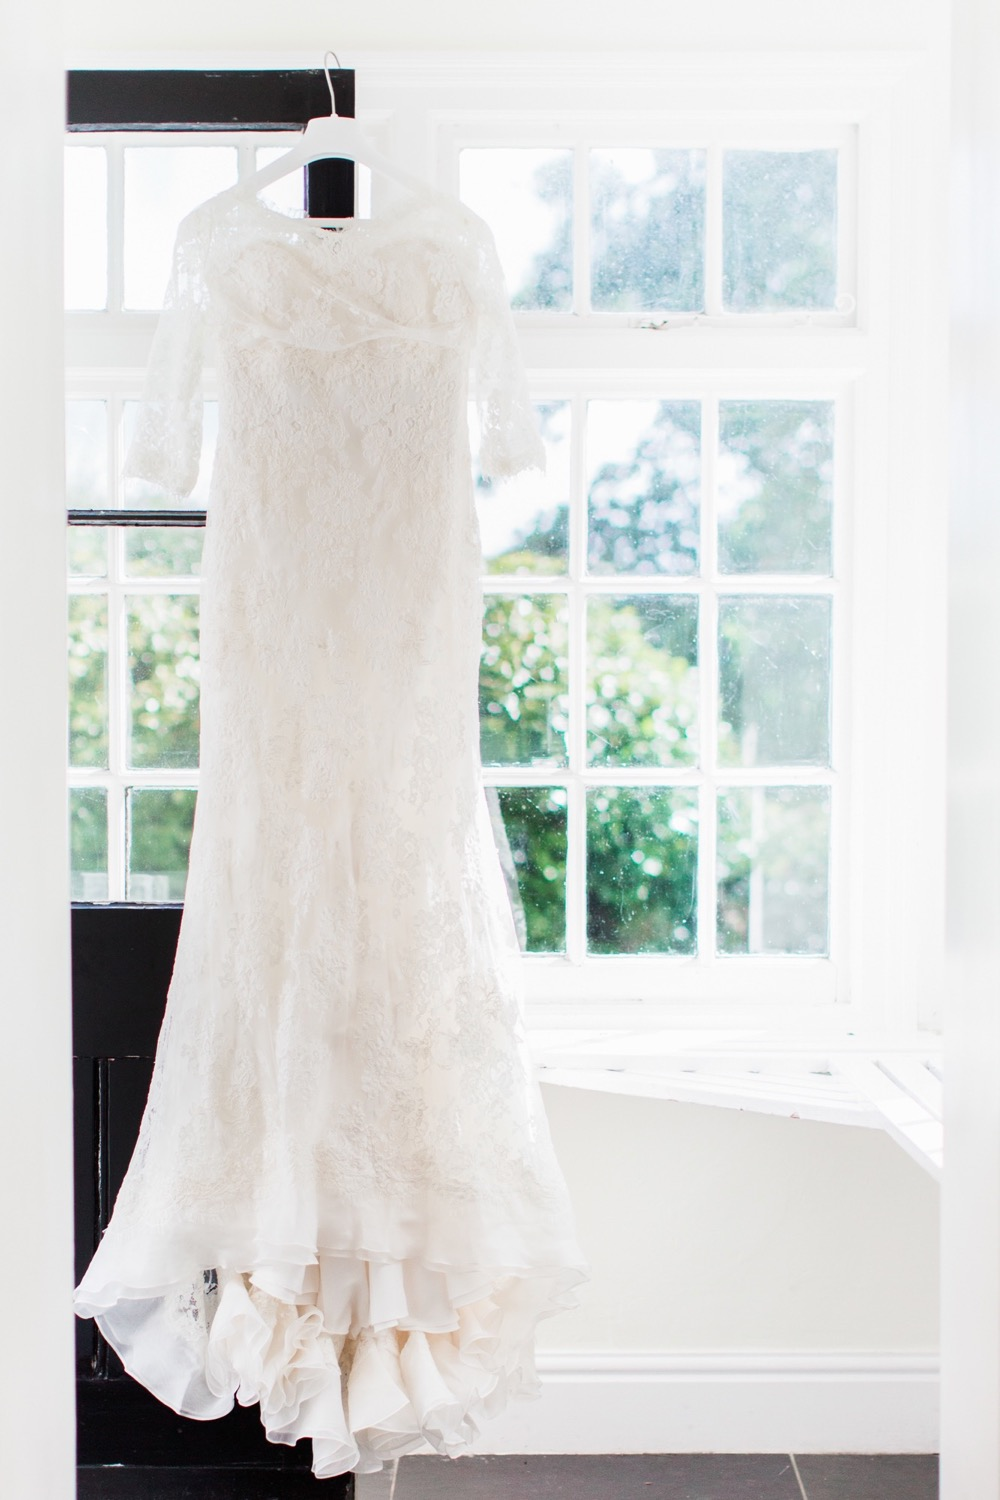 Lace, white wedding gown hanging in the porch of the the house. In the background there are Georgian say windows and a black painted front door that is open.